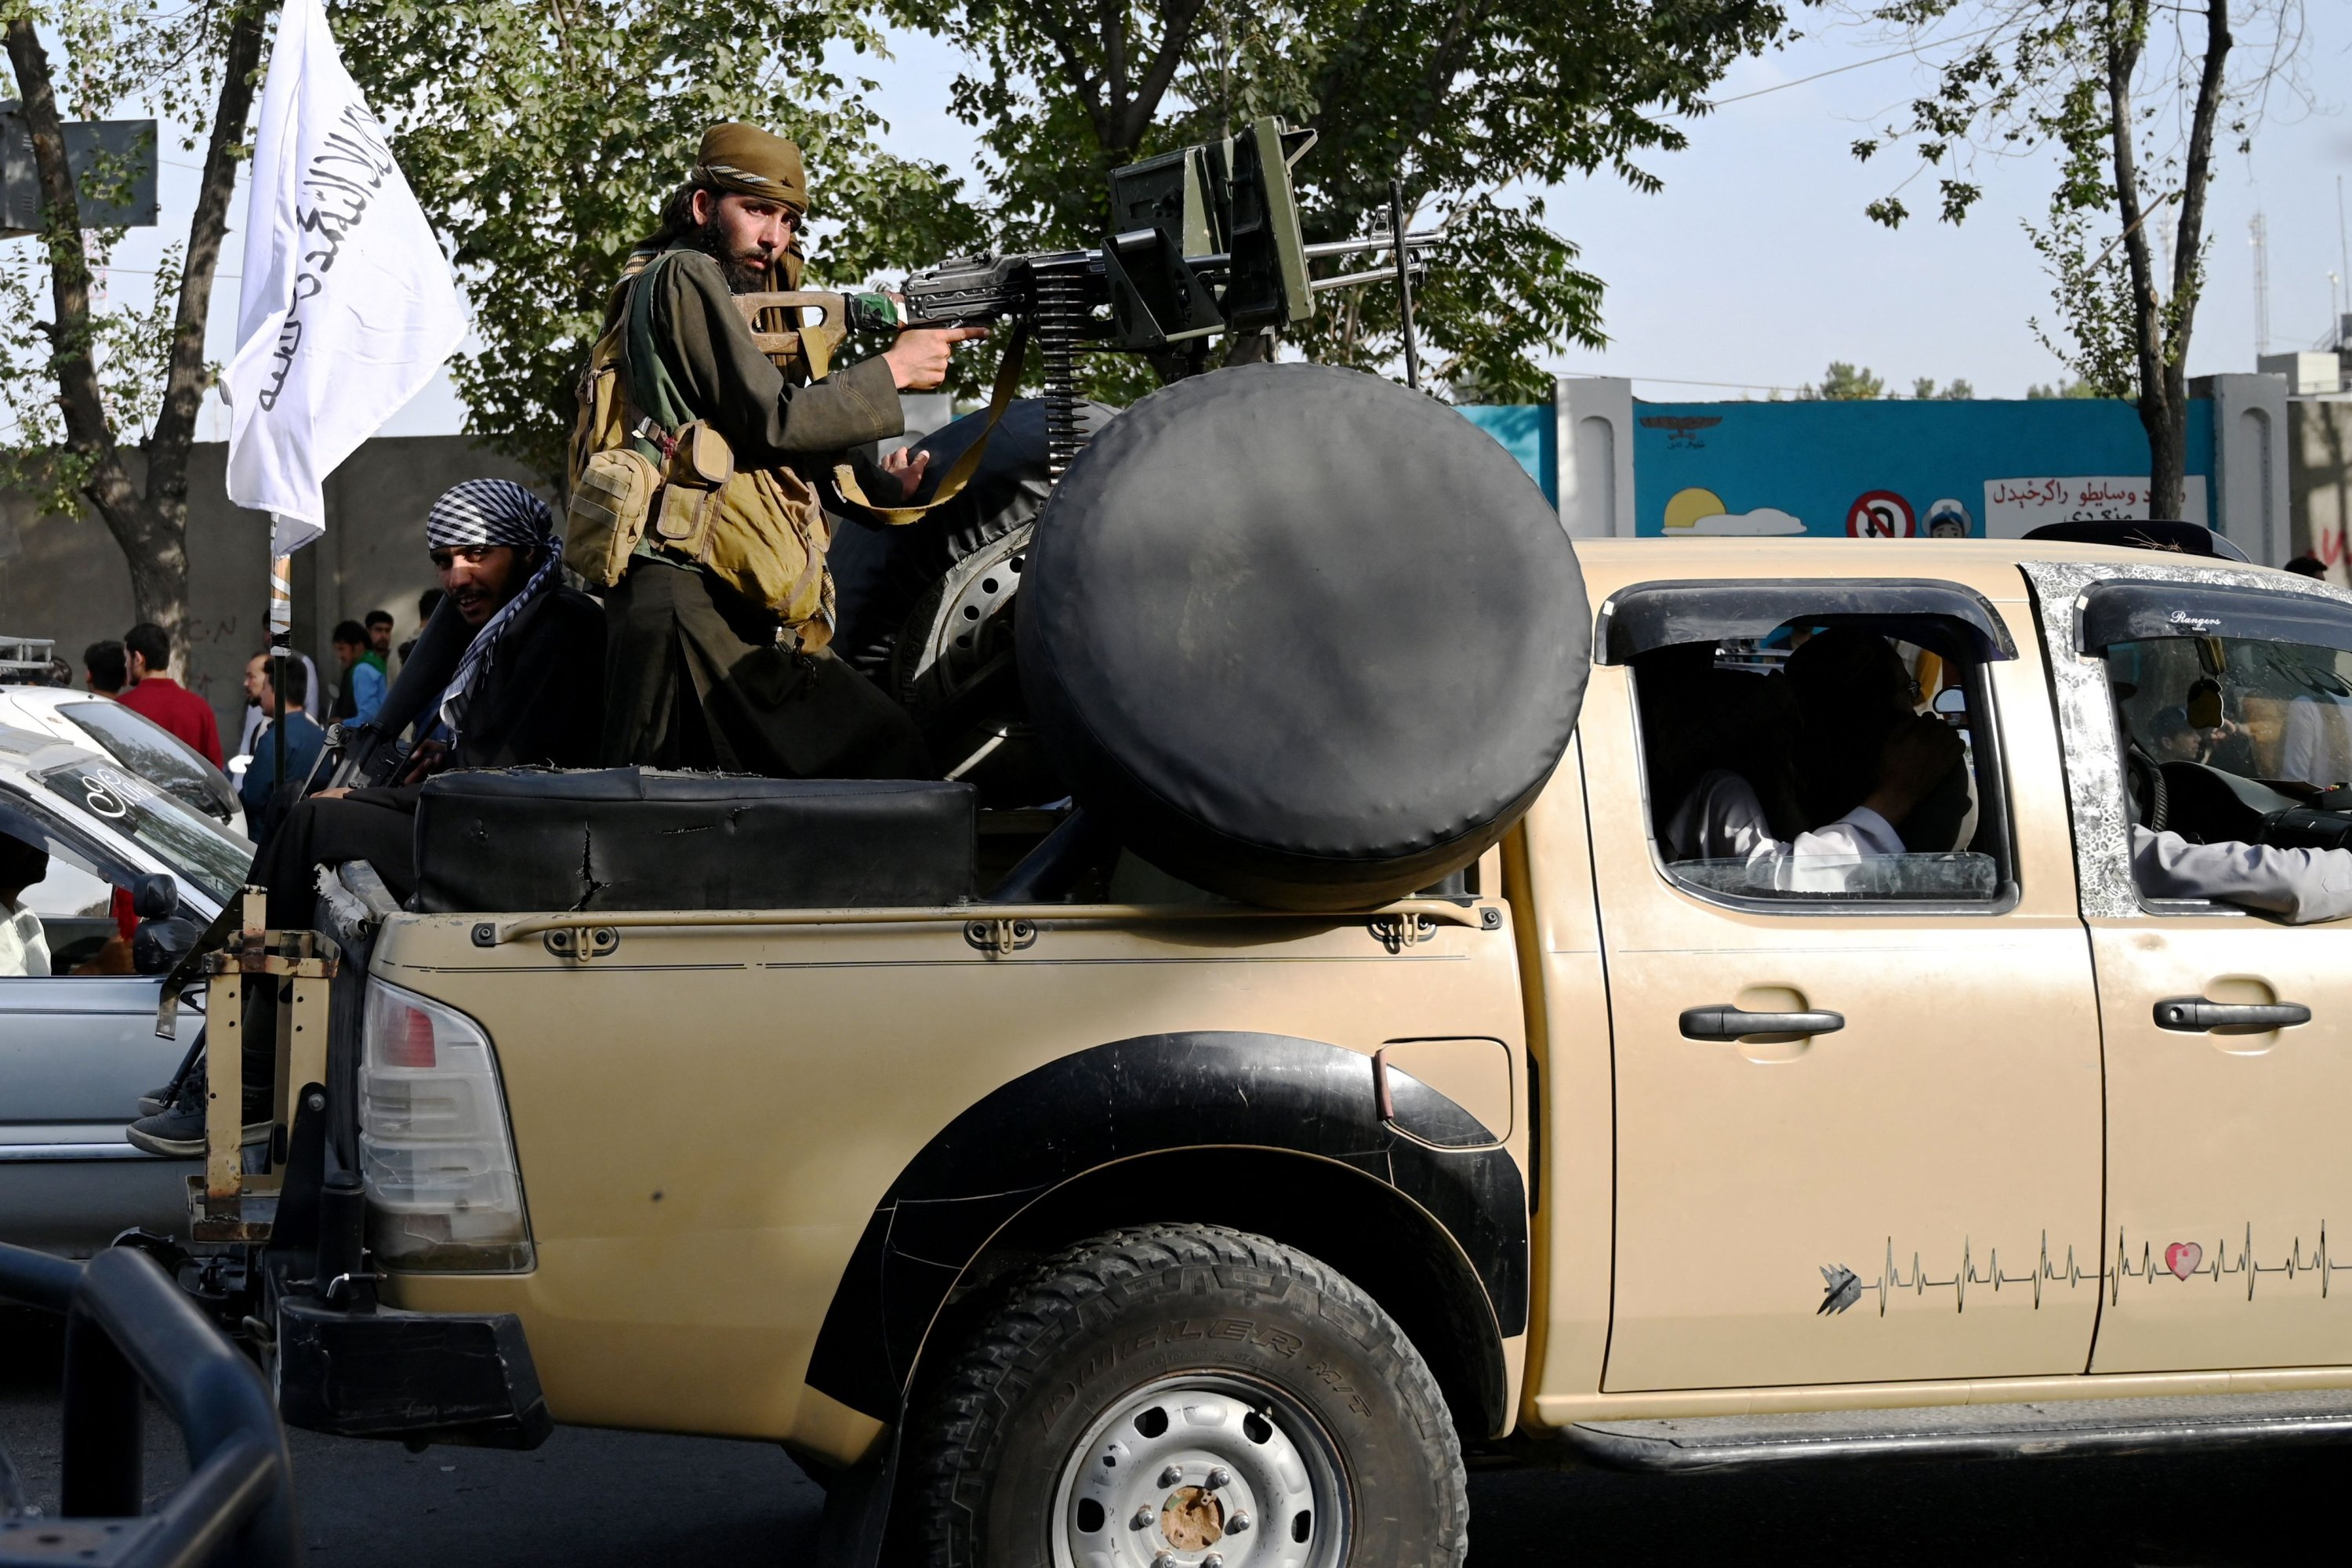 Taliban fighters travel with weapons mounted on a vehicle after the group's military takeover in Kabul, Afghanistan, Aug. 19, 2021. (Photo by WAKIL KOHSAR via AFP)